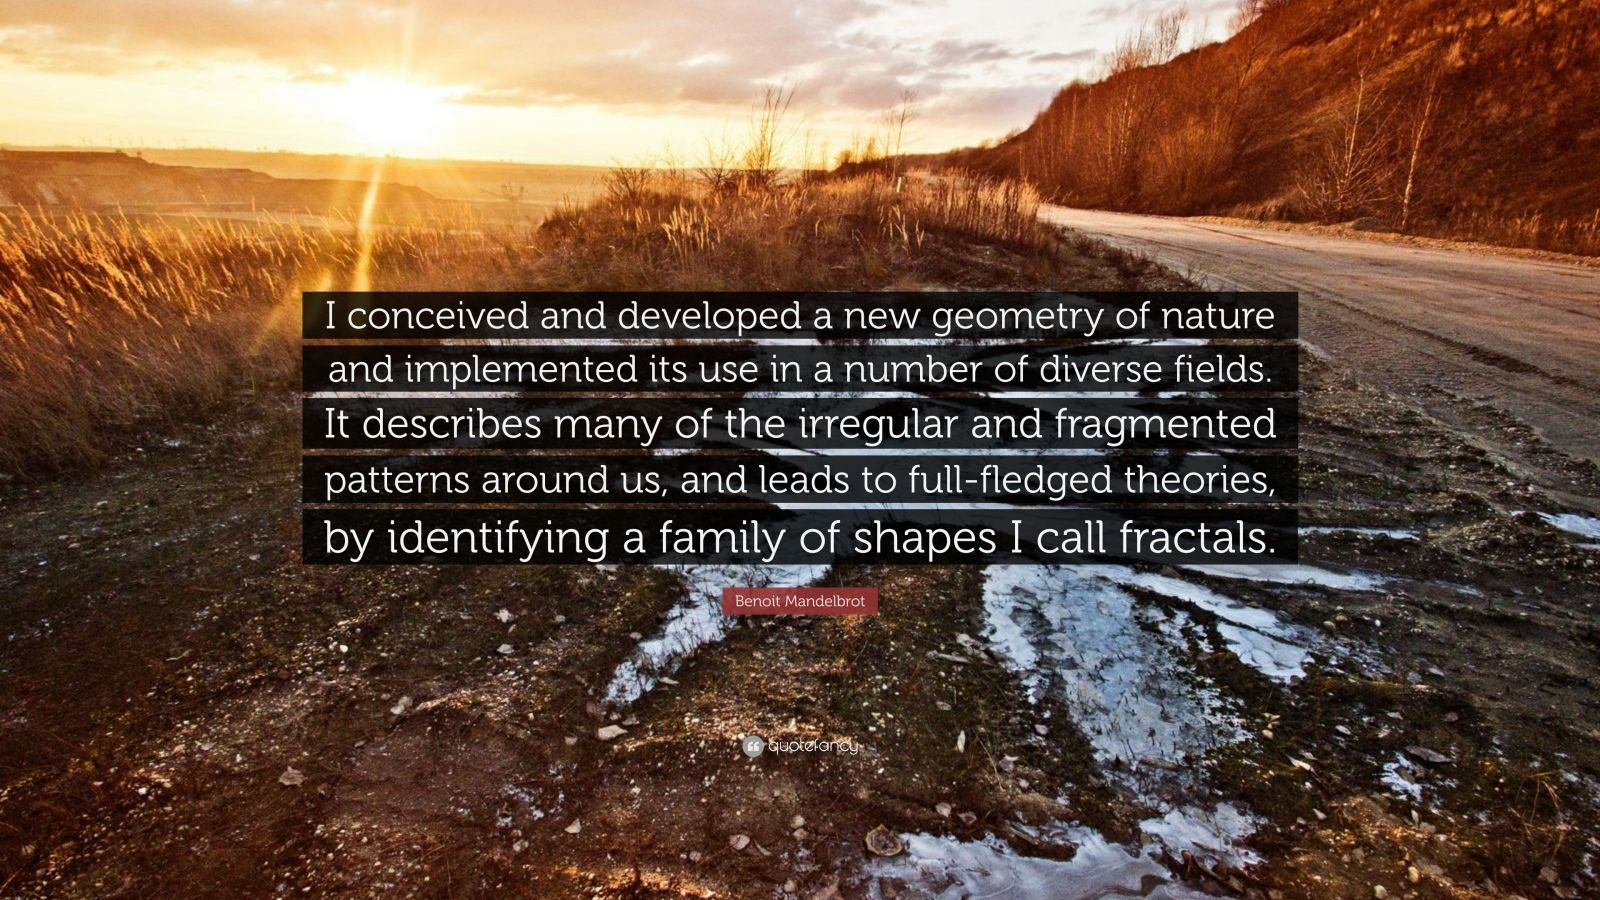 """Benoit Mandelbrot Quote: """"I conceived and developed a new geometry of nature and implemented its use in a number of diverse fields. It describes many of the irregular and fragmented patterns around us, and leads to full-fledged theories, by identifying a family of shapes I call fractals."""""""